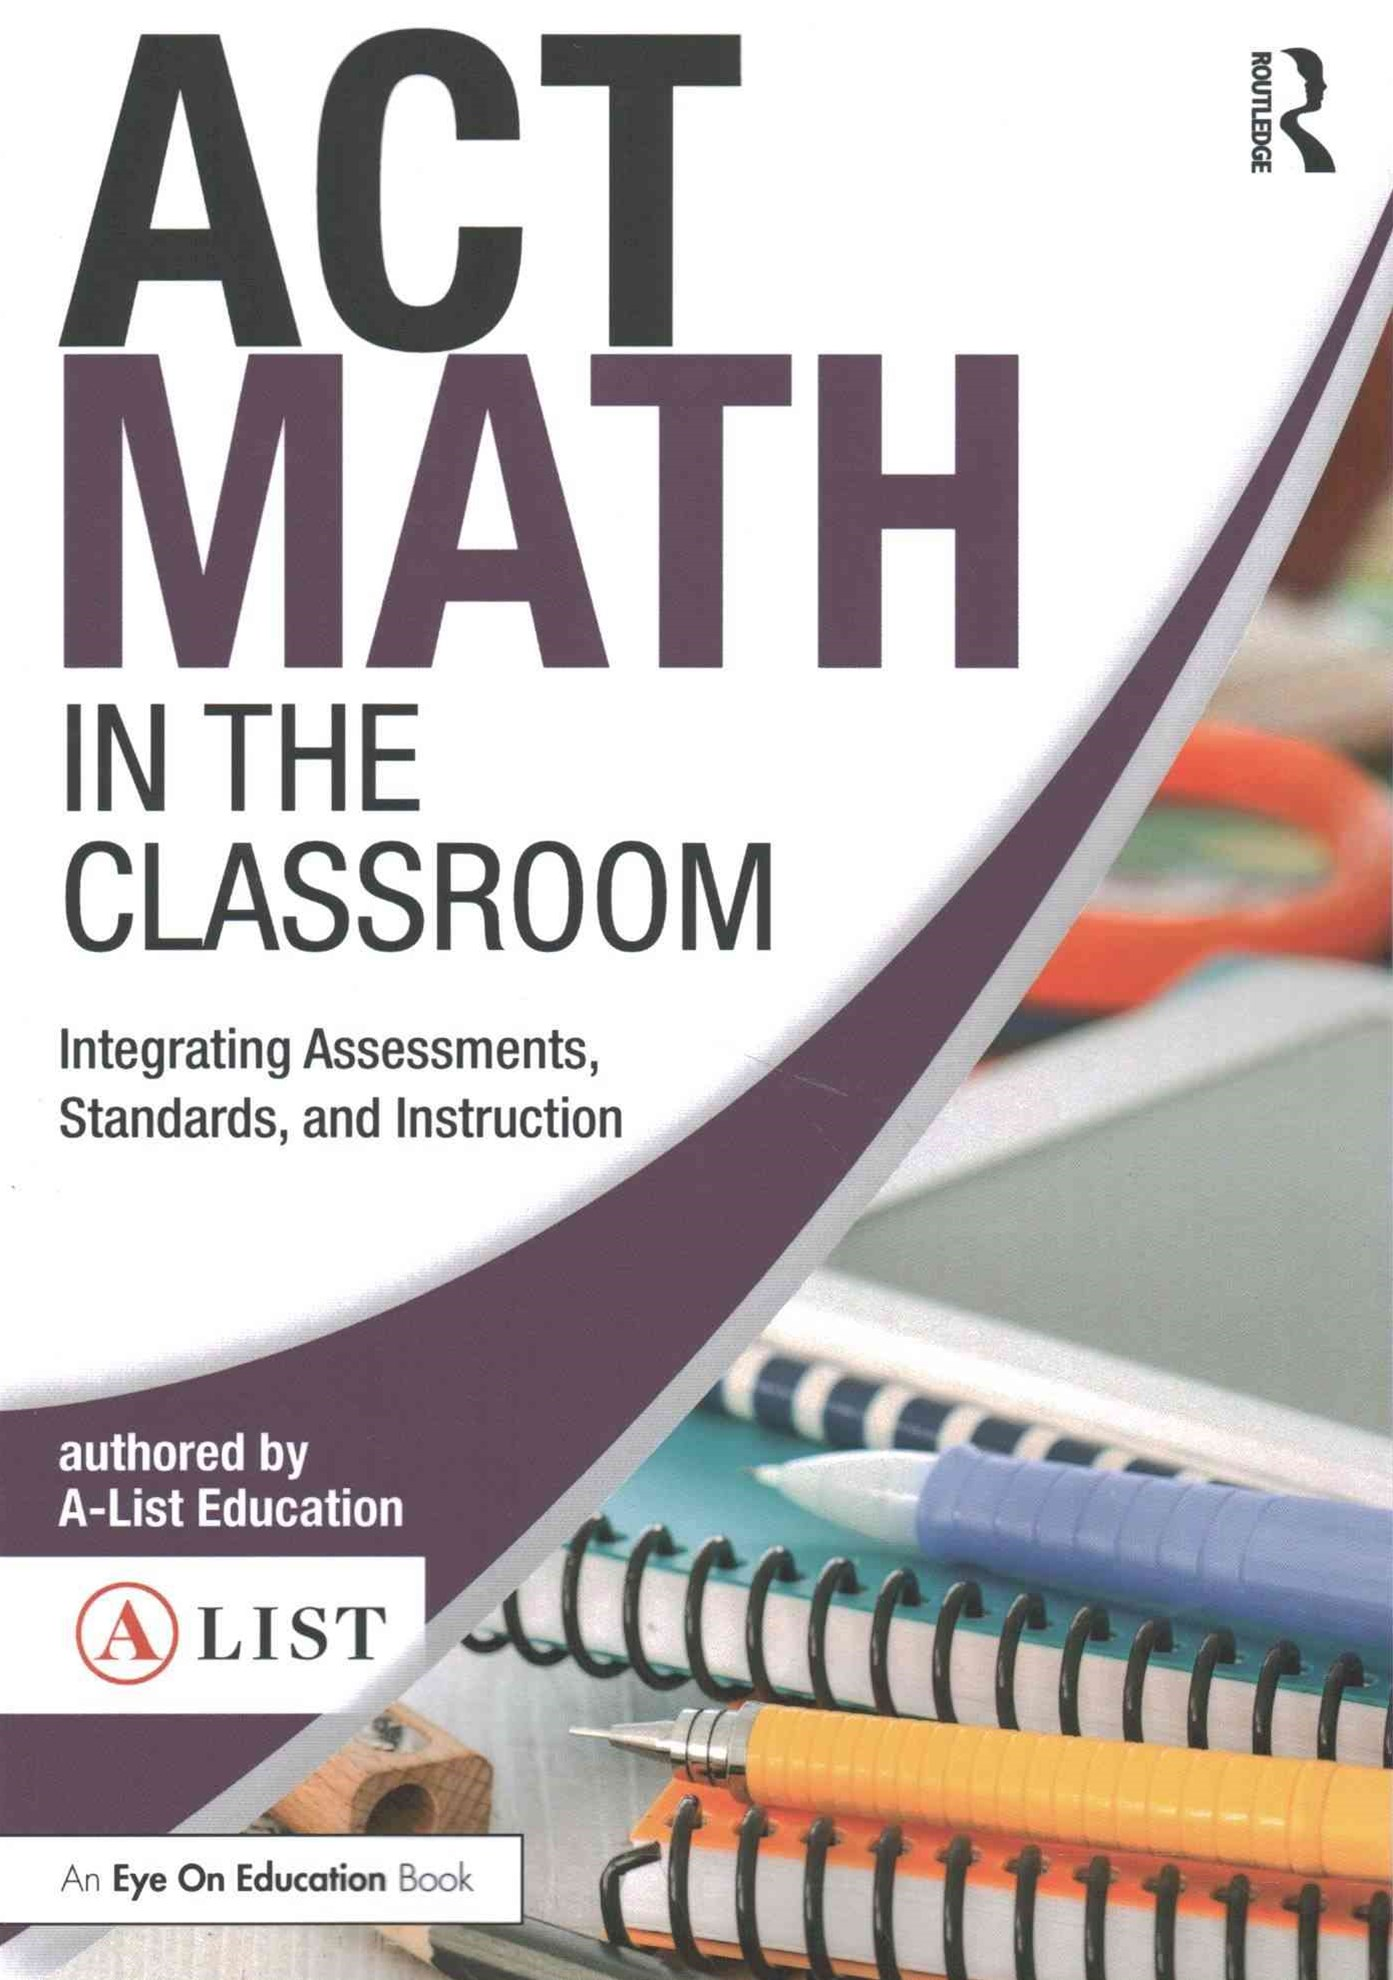 ACT Math in the Classroom